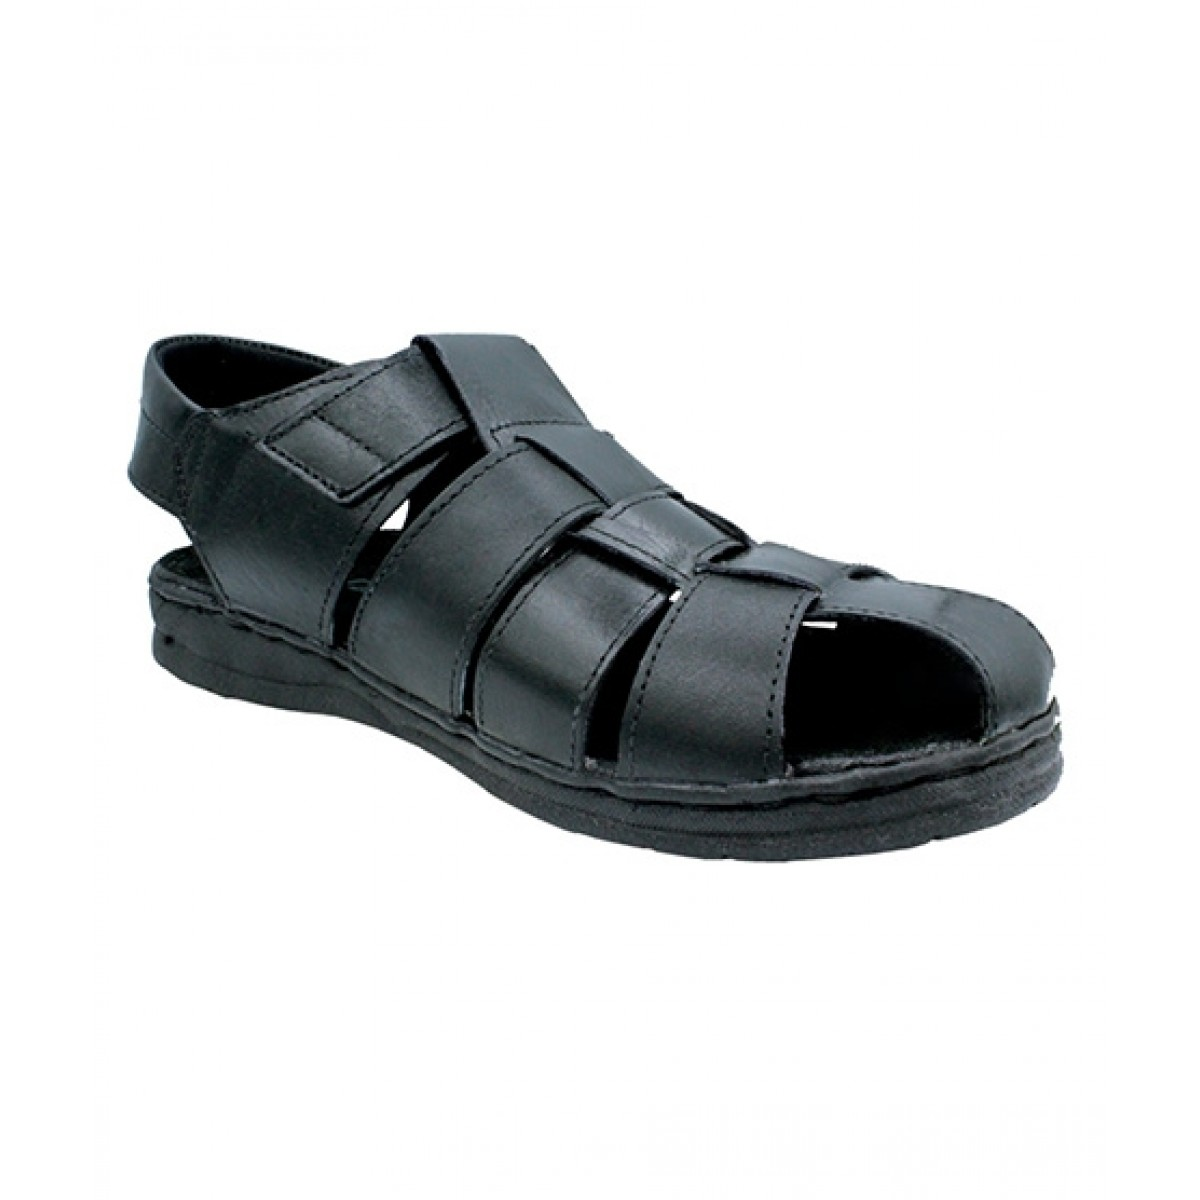 MOZAX Casual Leather Sandal For Men Black (0001)